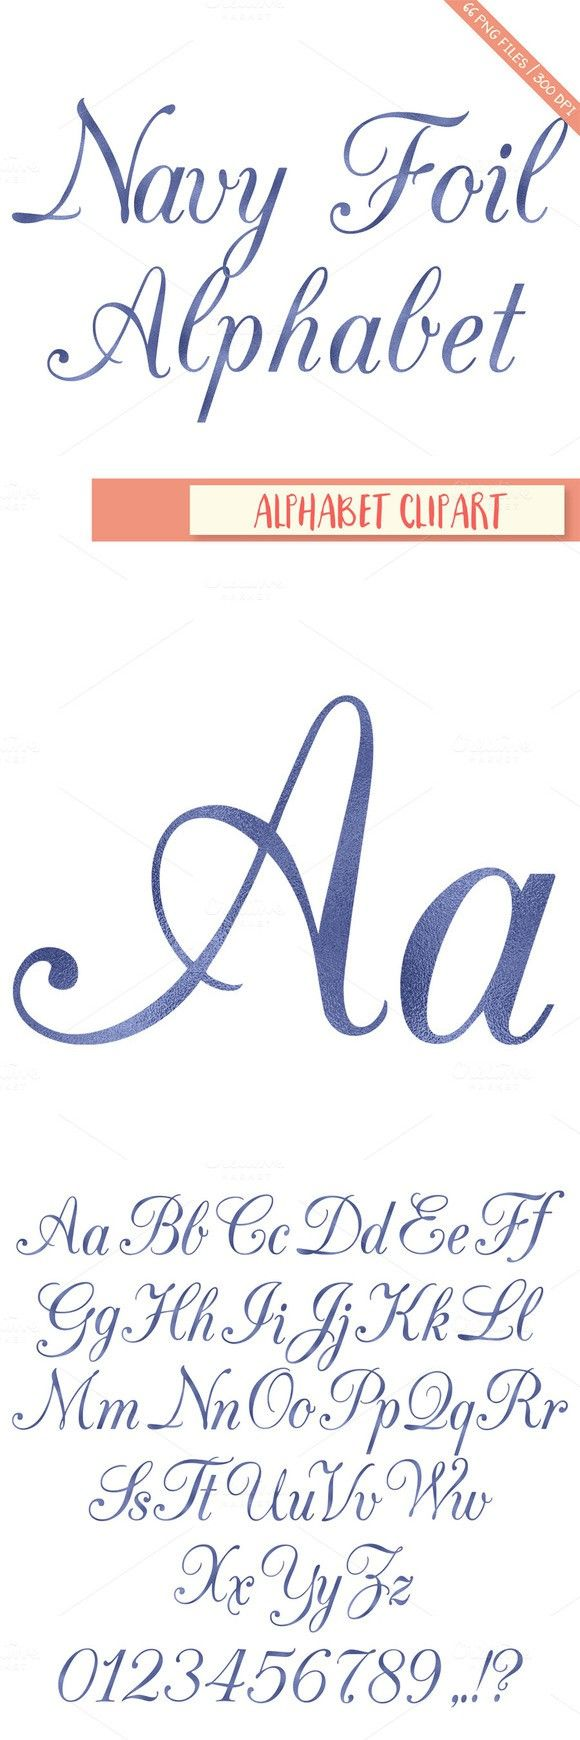 Navy foil alphabet clipart. Wedding Fonts. $4.00